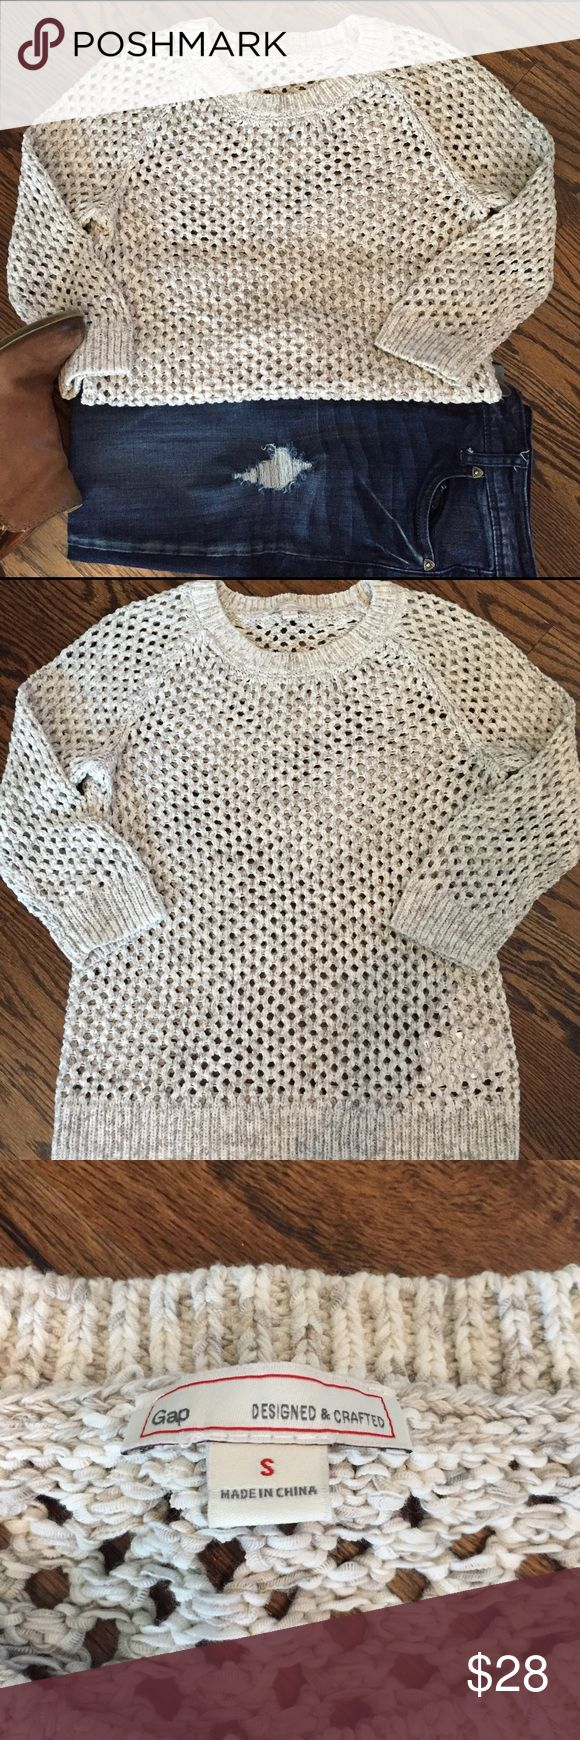 Price ⬇️Cream & gray open weave Gap sweater This Gap sweater has a wide open weave in shades of cream, gray and tan.  Wear it with a cami or a button down underneath - a truly transitional wardrobe piece.  In excellent used condition - only worn once.  Size Small. GAP Sweaters